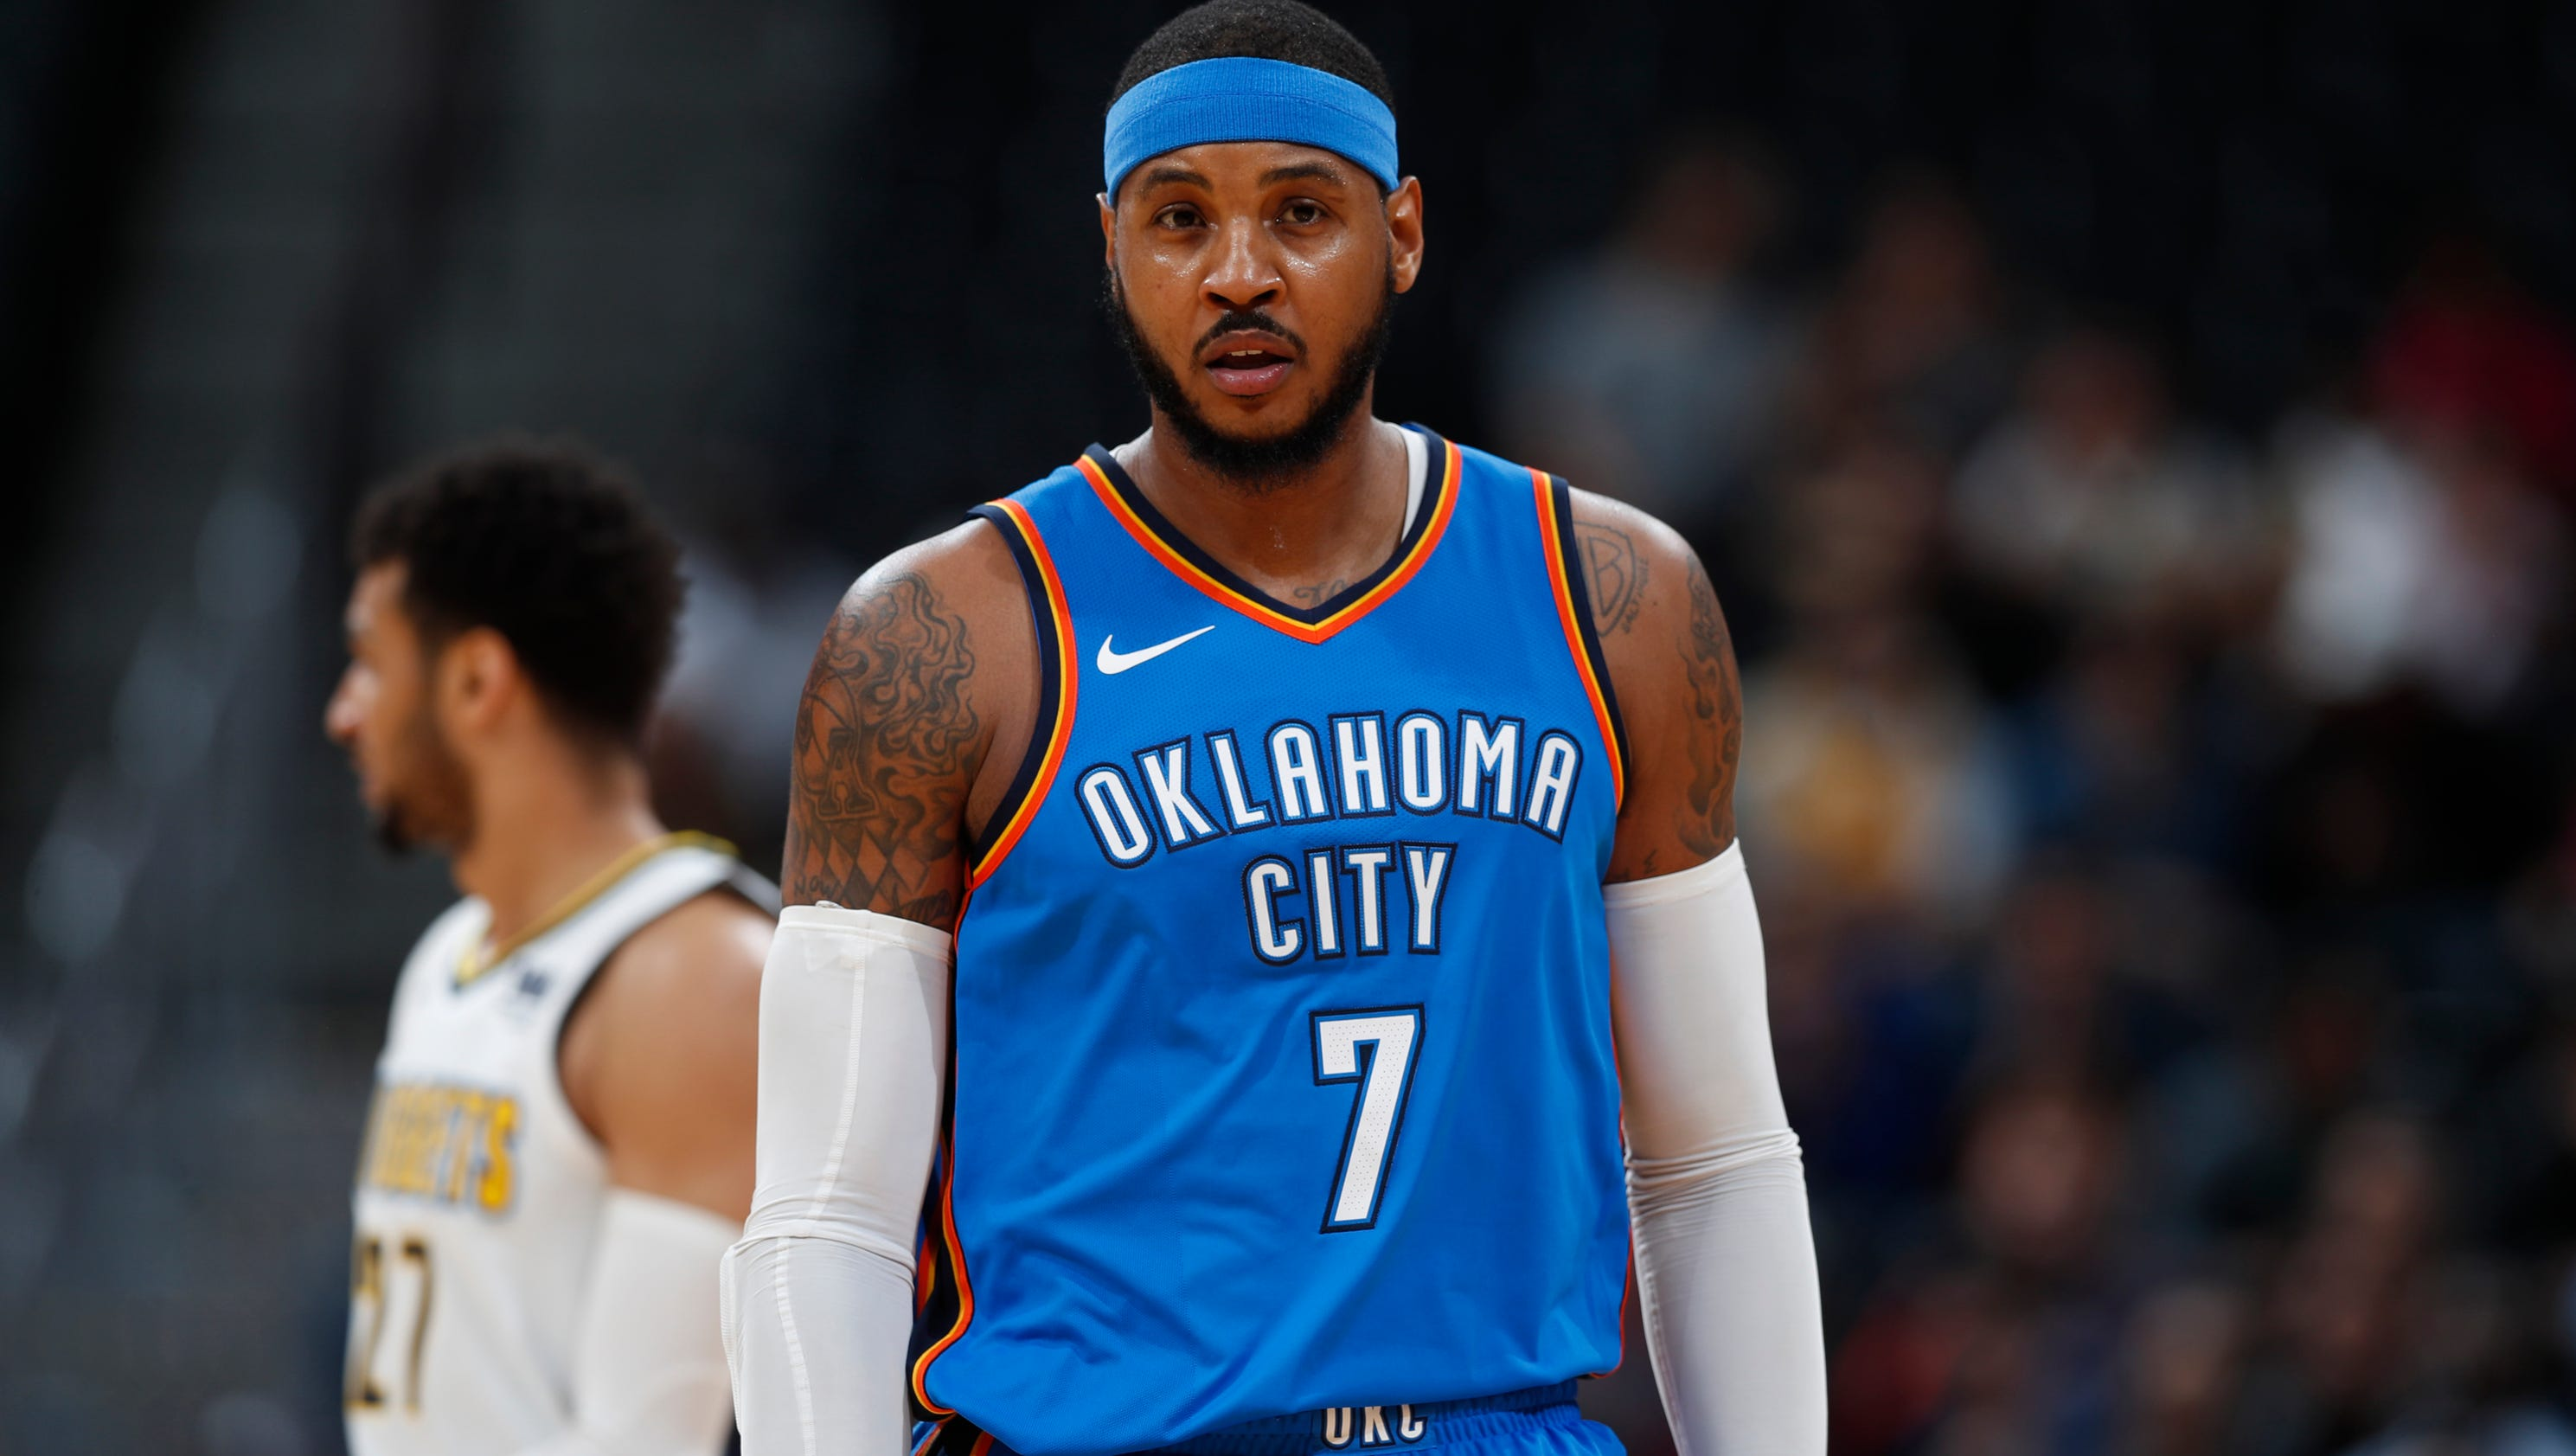 Carmelo Anthony looks back one last time